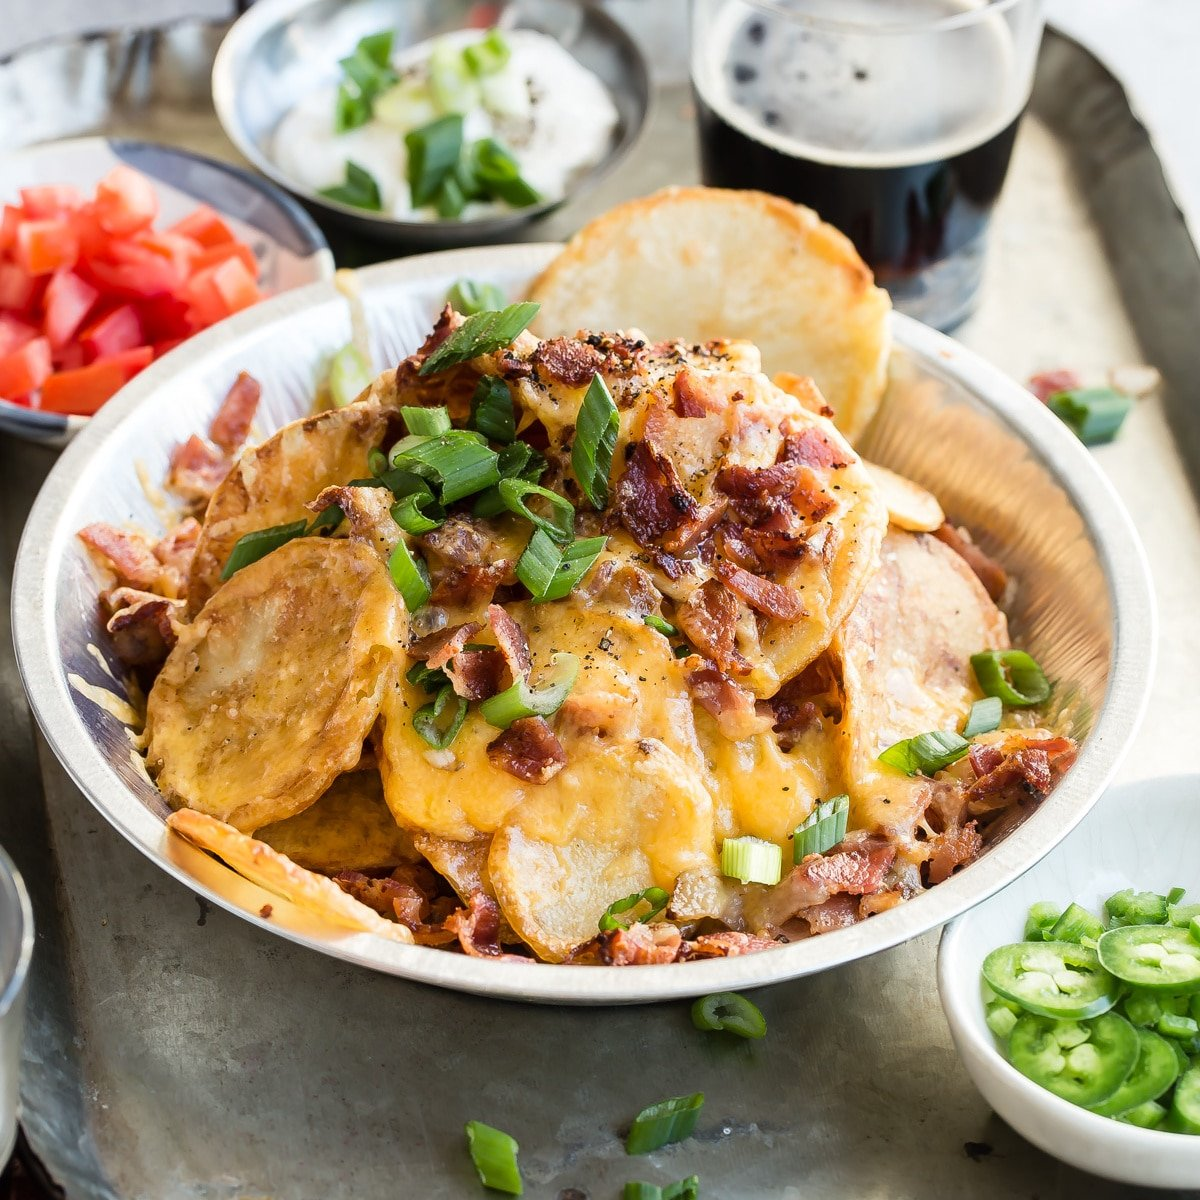 A platter of Irish Nachos is pub food at its finest; all the best parts of a loaded baked potato and Tex-Mex nacho ingredients come together in one glorious bite. This recipe is American fusion food at its best!